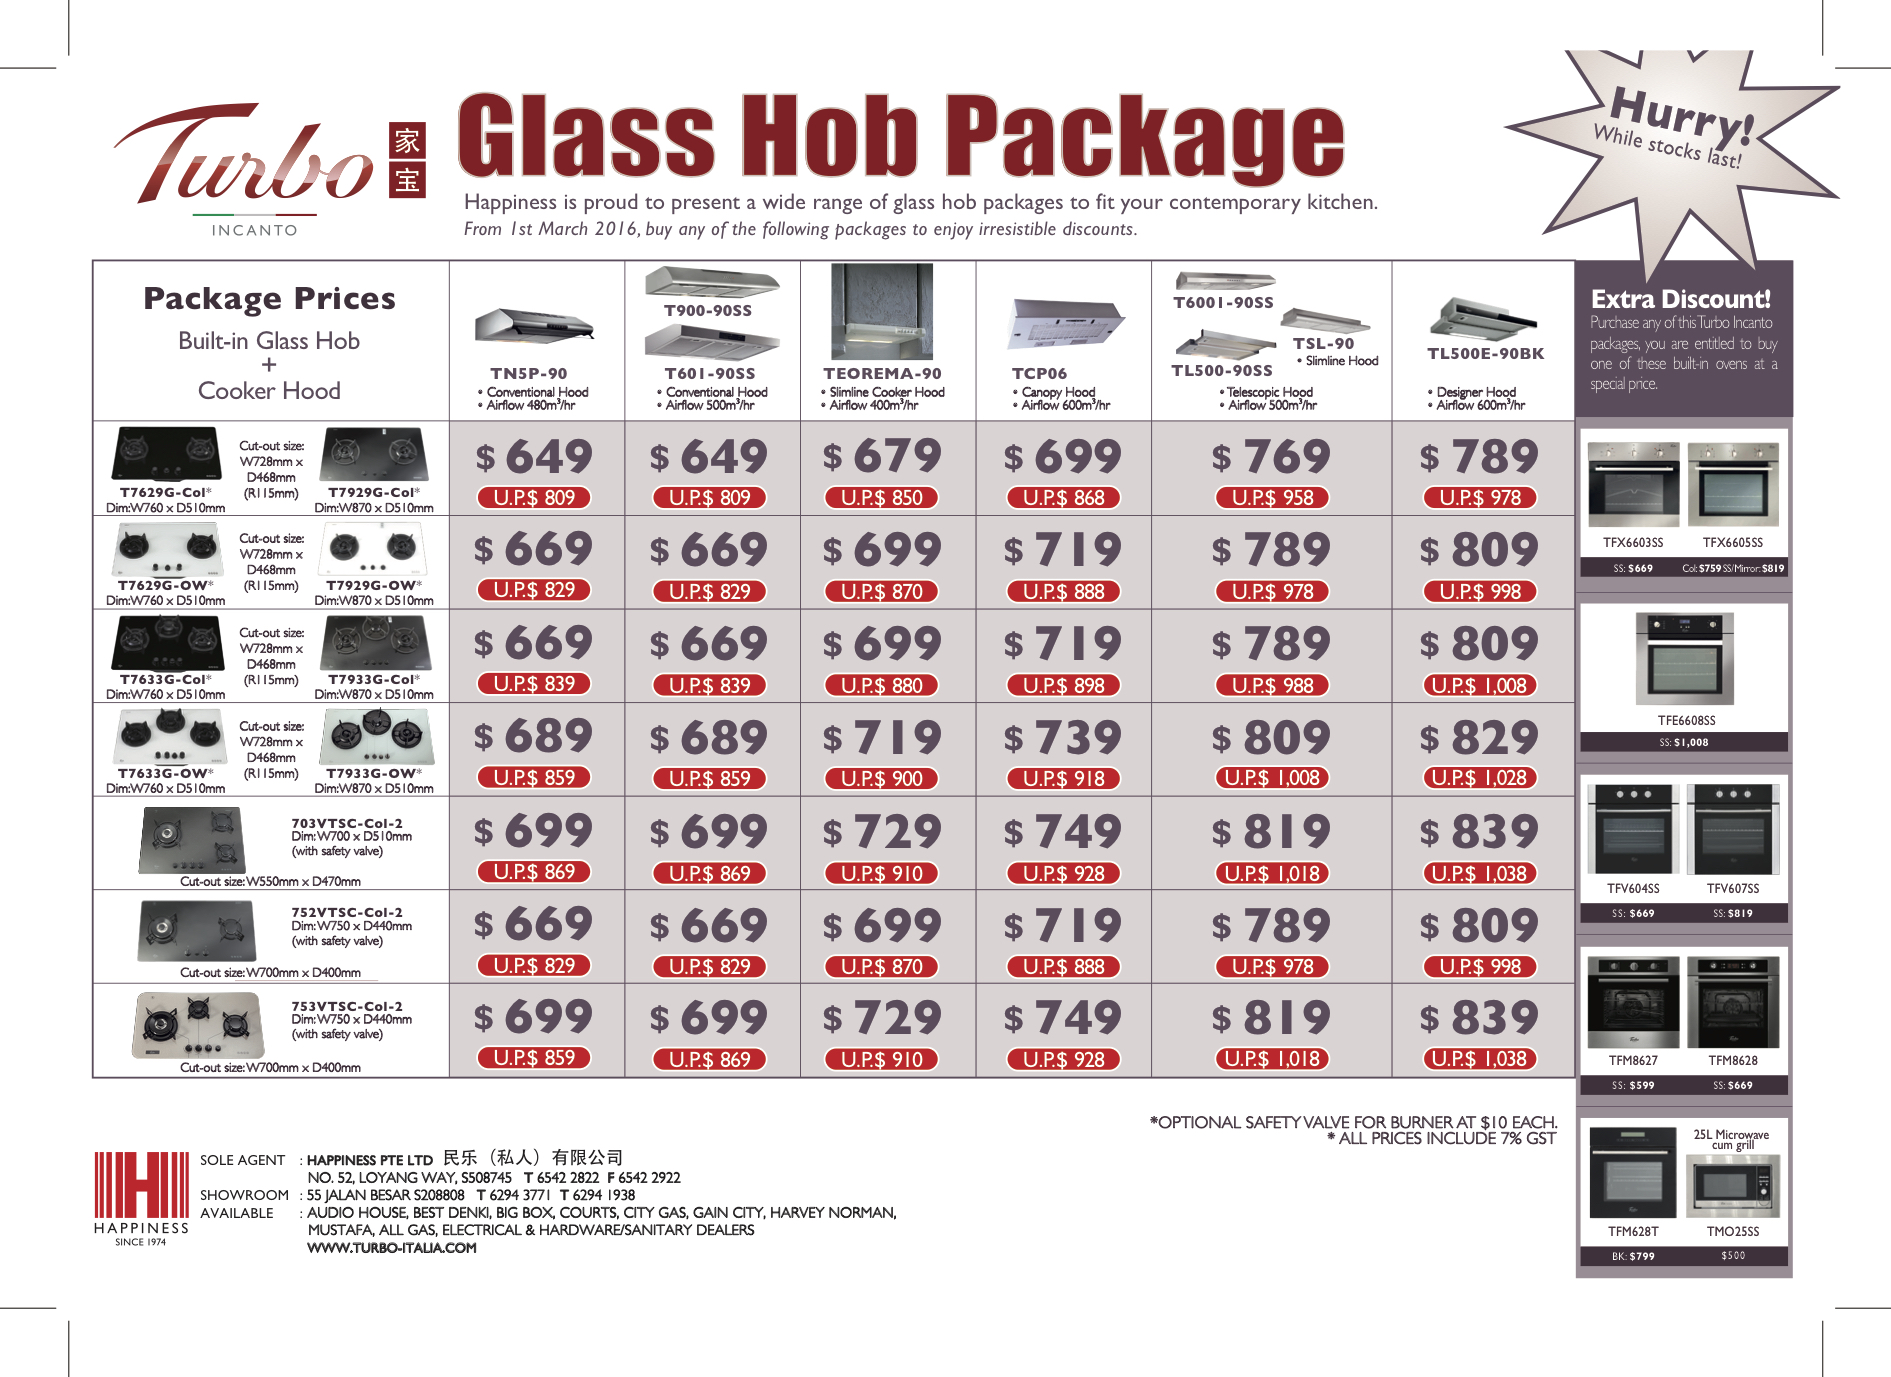 Turbo Italia Glass Hob and Cooker Hood Bundle Promotions